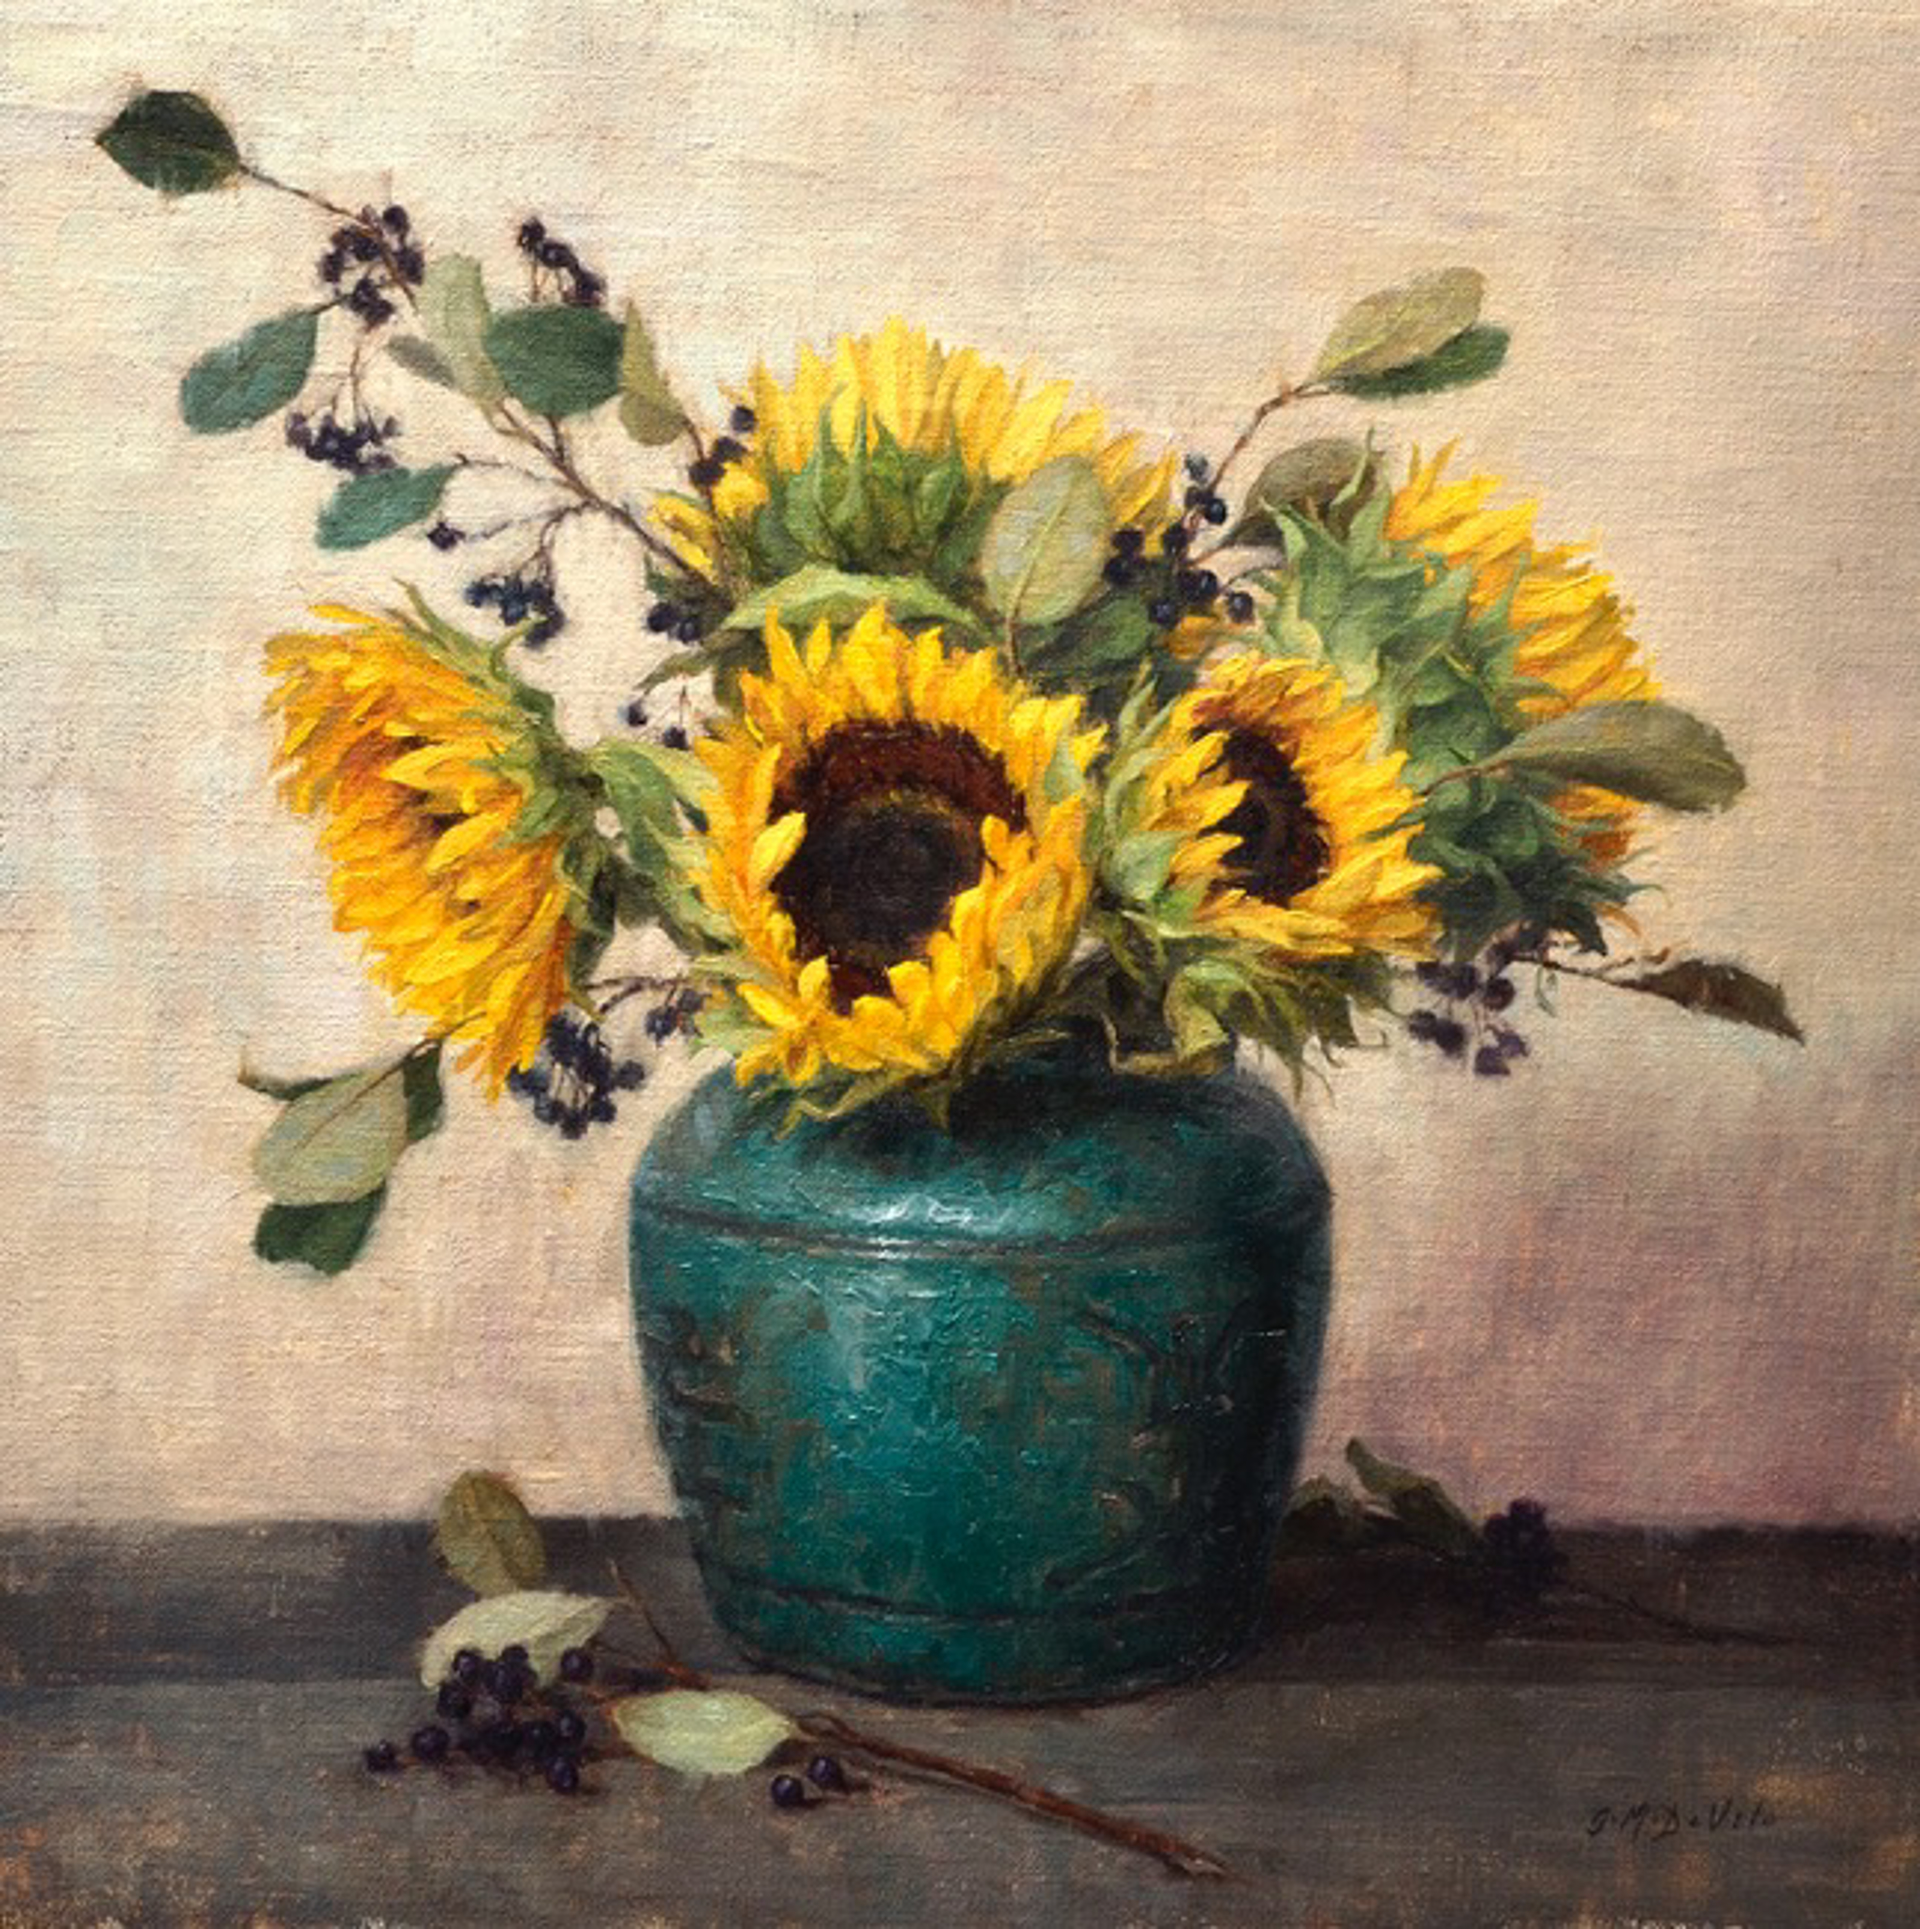 Sunflowers by GRACE DeVITO